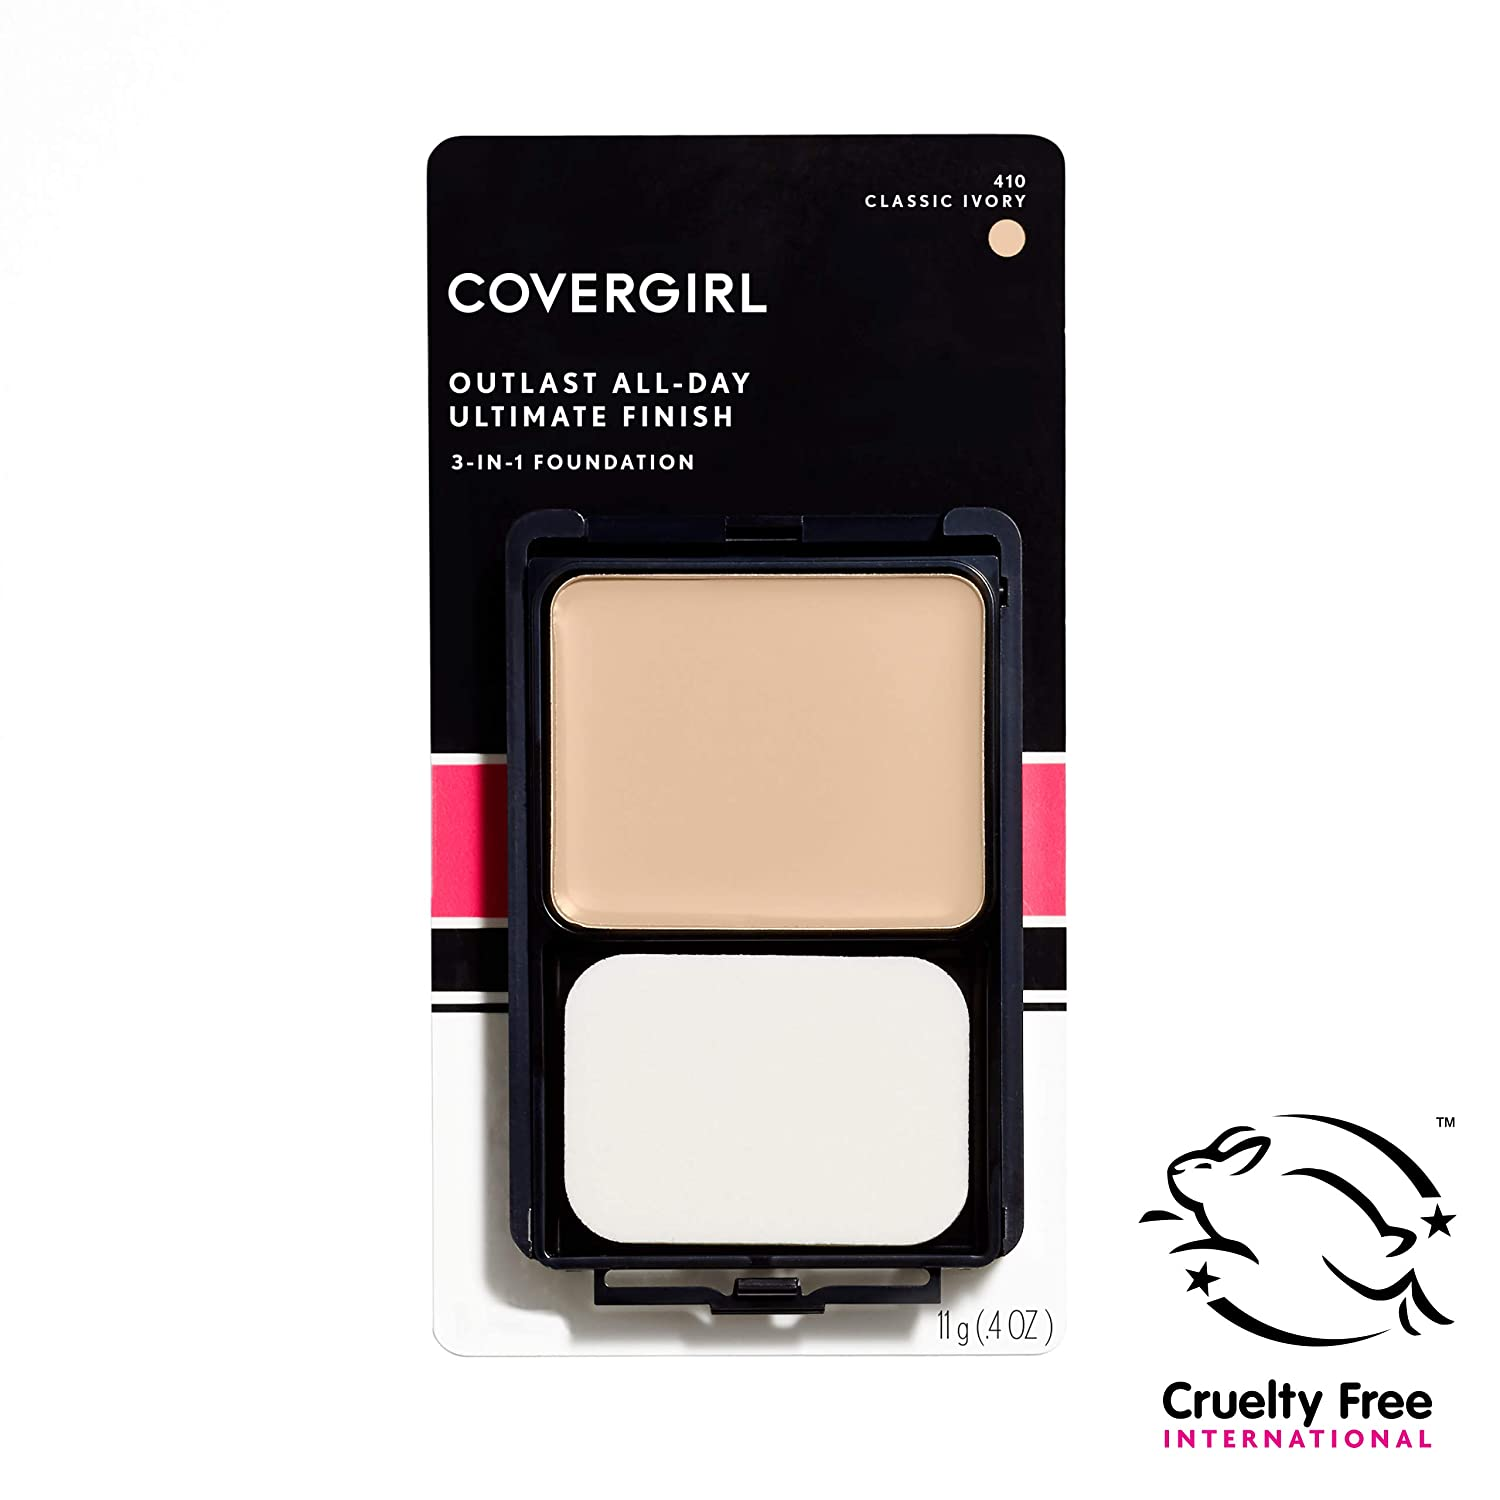 Covergirl Outlast All-Day Ultimate Finish Foundation, Classic Ivory